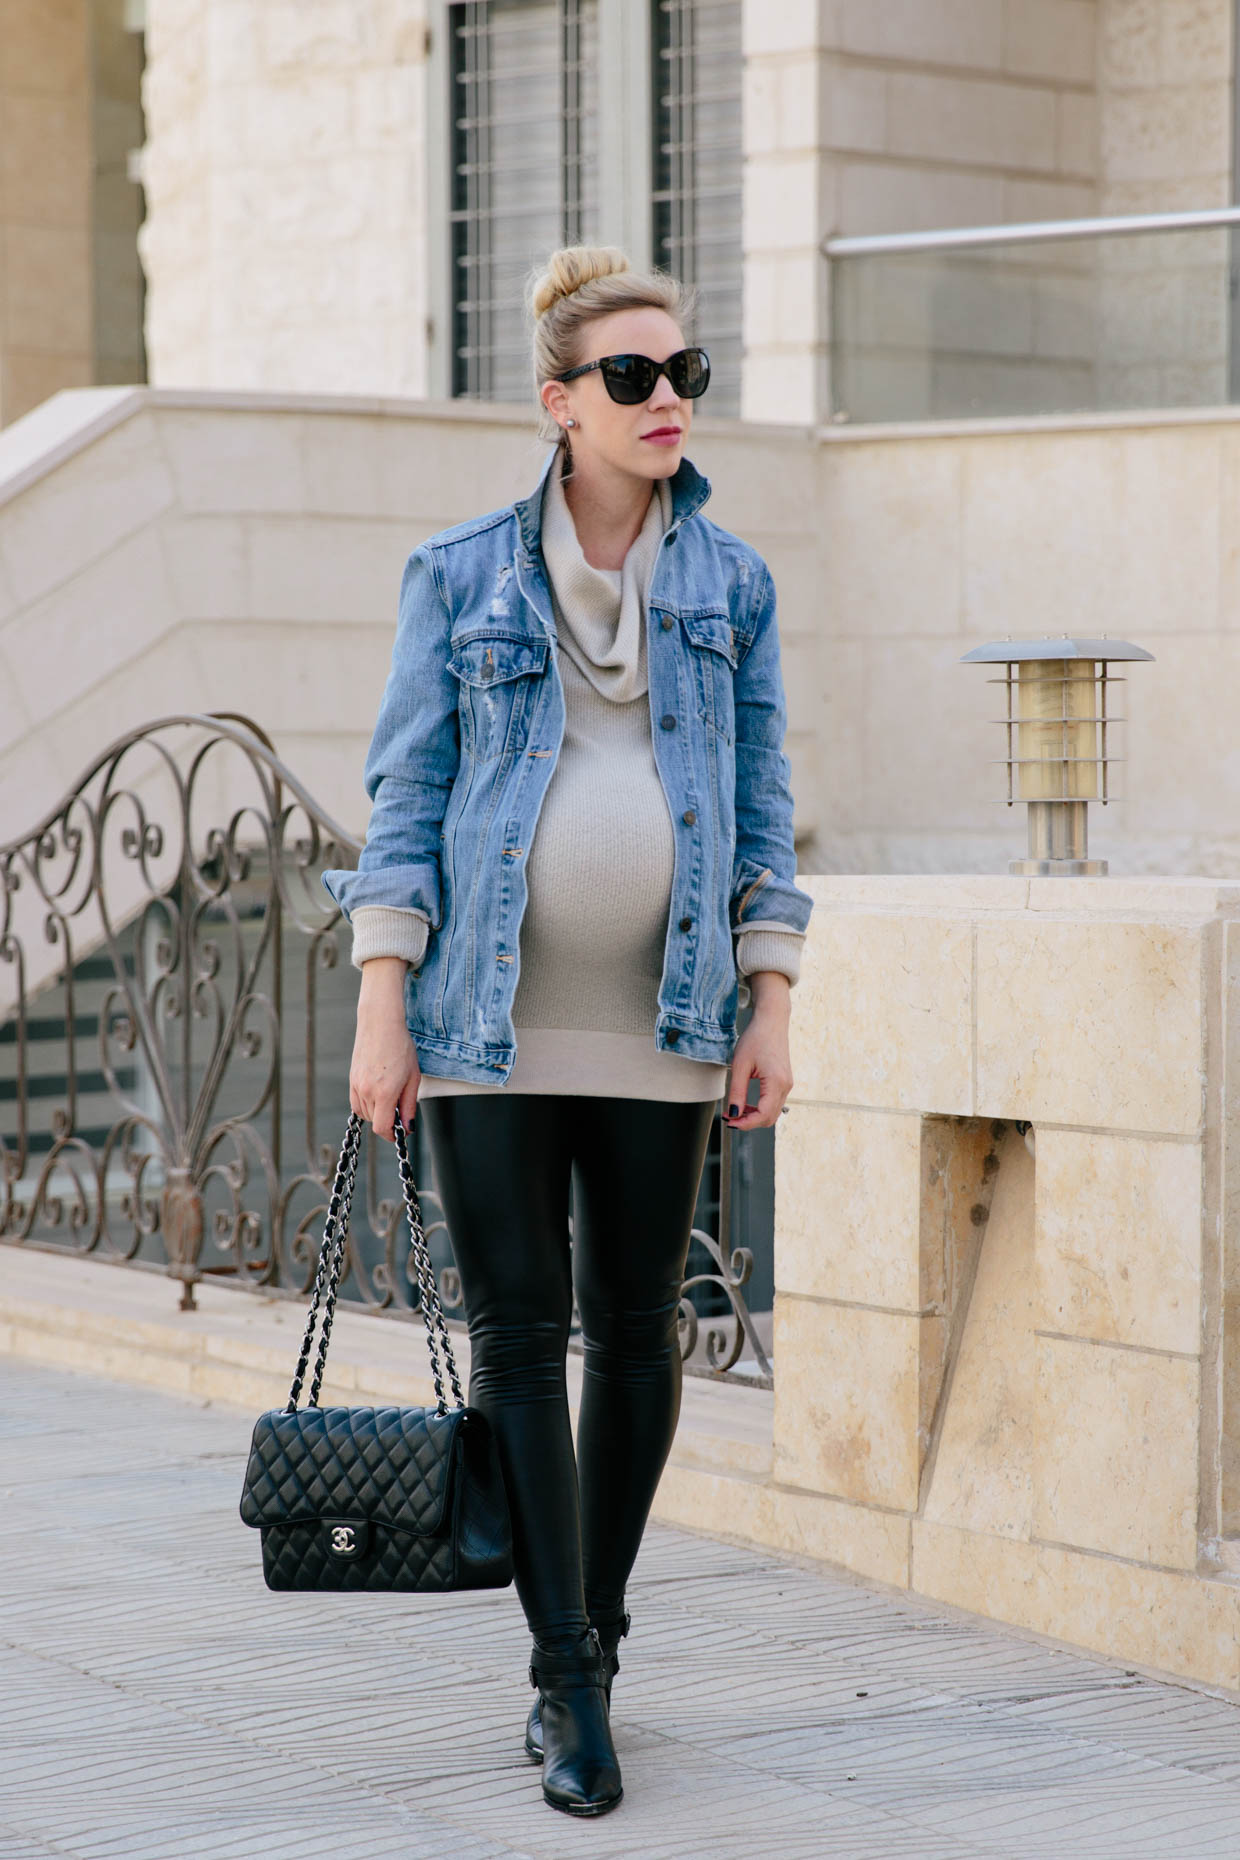 Shop trendy maternity leggings at A Pea in the Pod. Find a variety of legging fabrics, prints and colors to match your style! A Pea in the Pod Maternity.